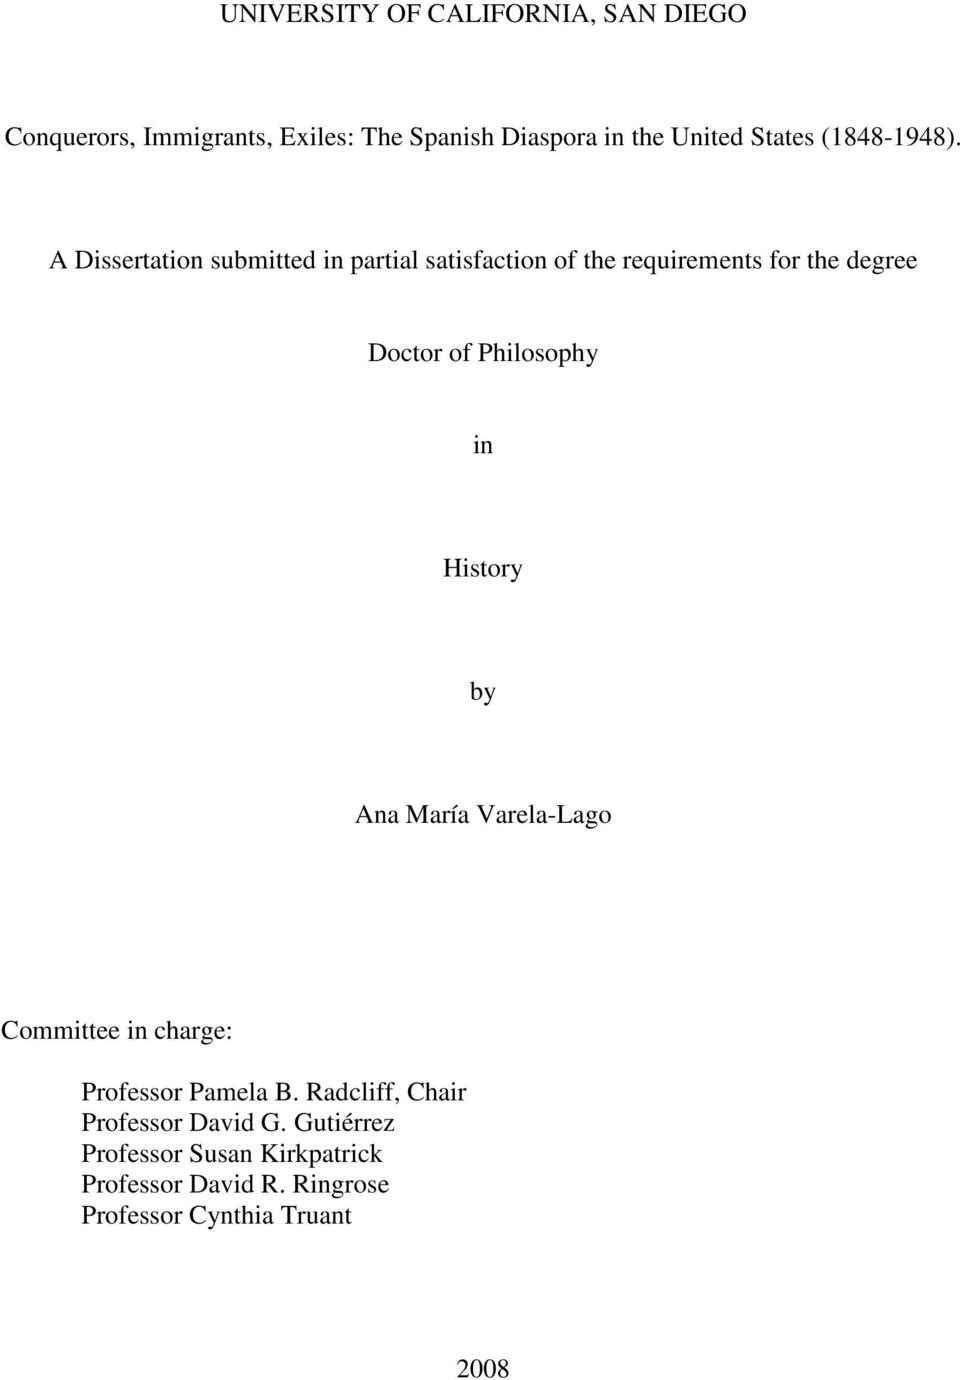 A Dissertation submitted in partial satisfaction of the requirements for the degree Doctor of Philosophy in